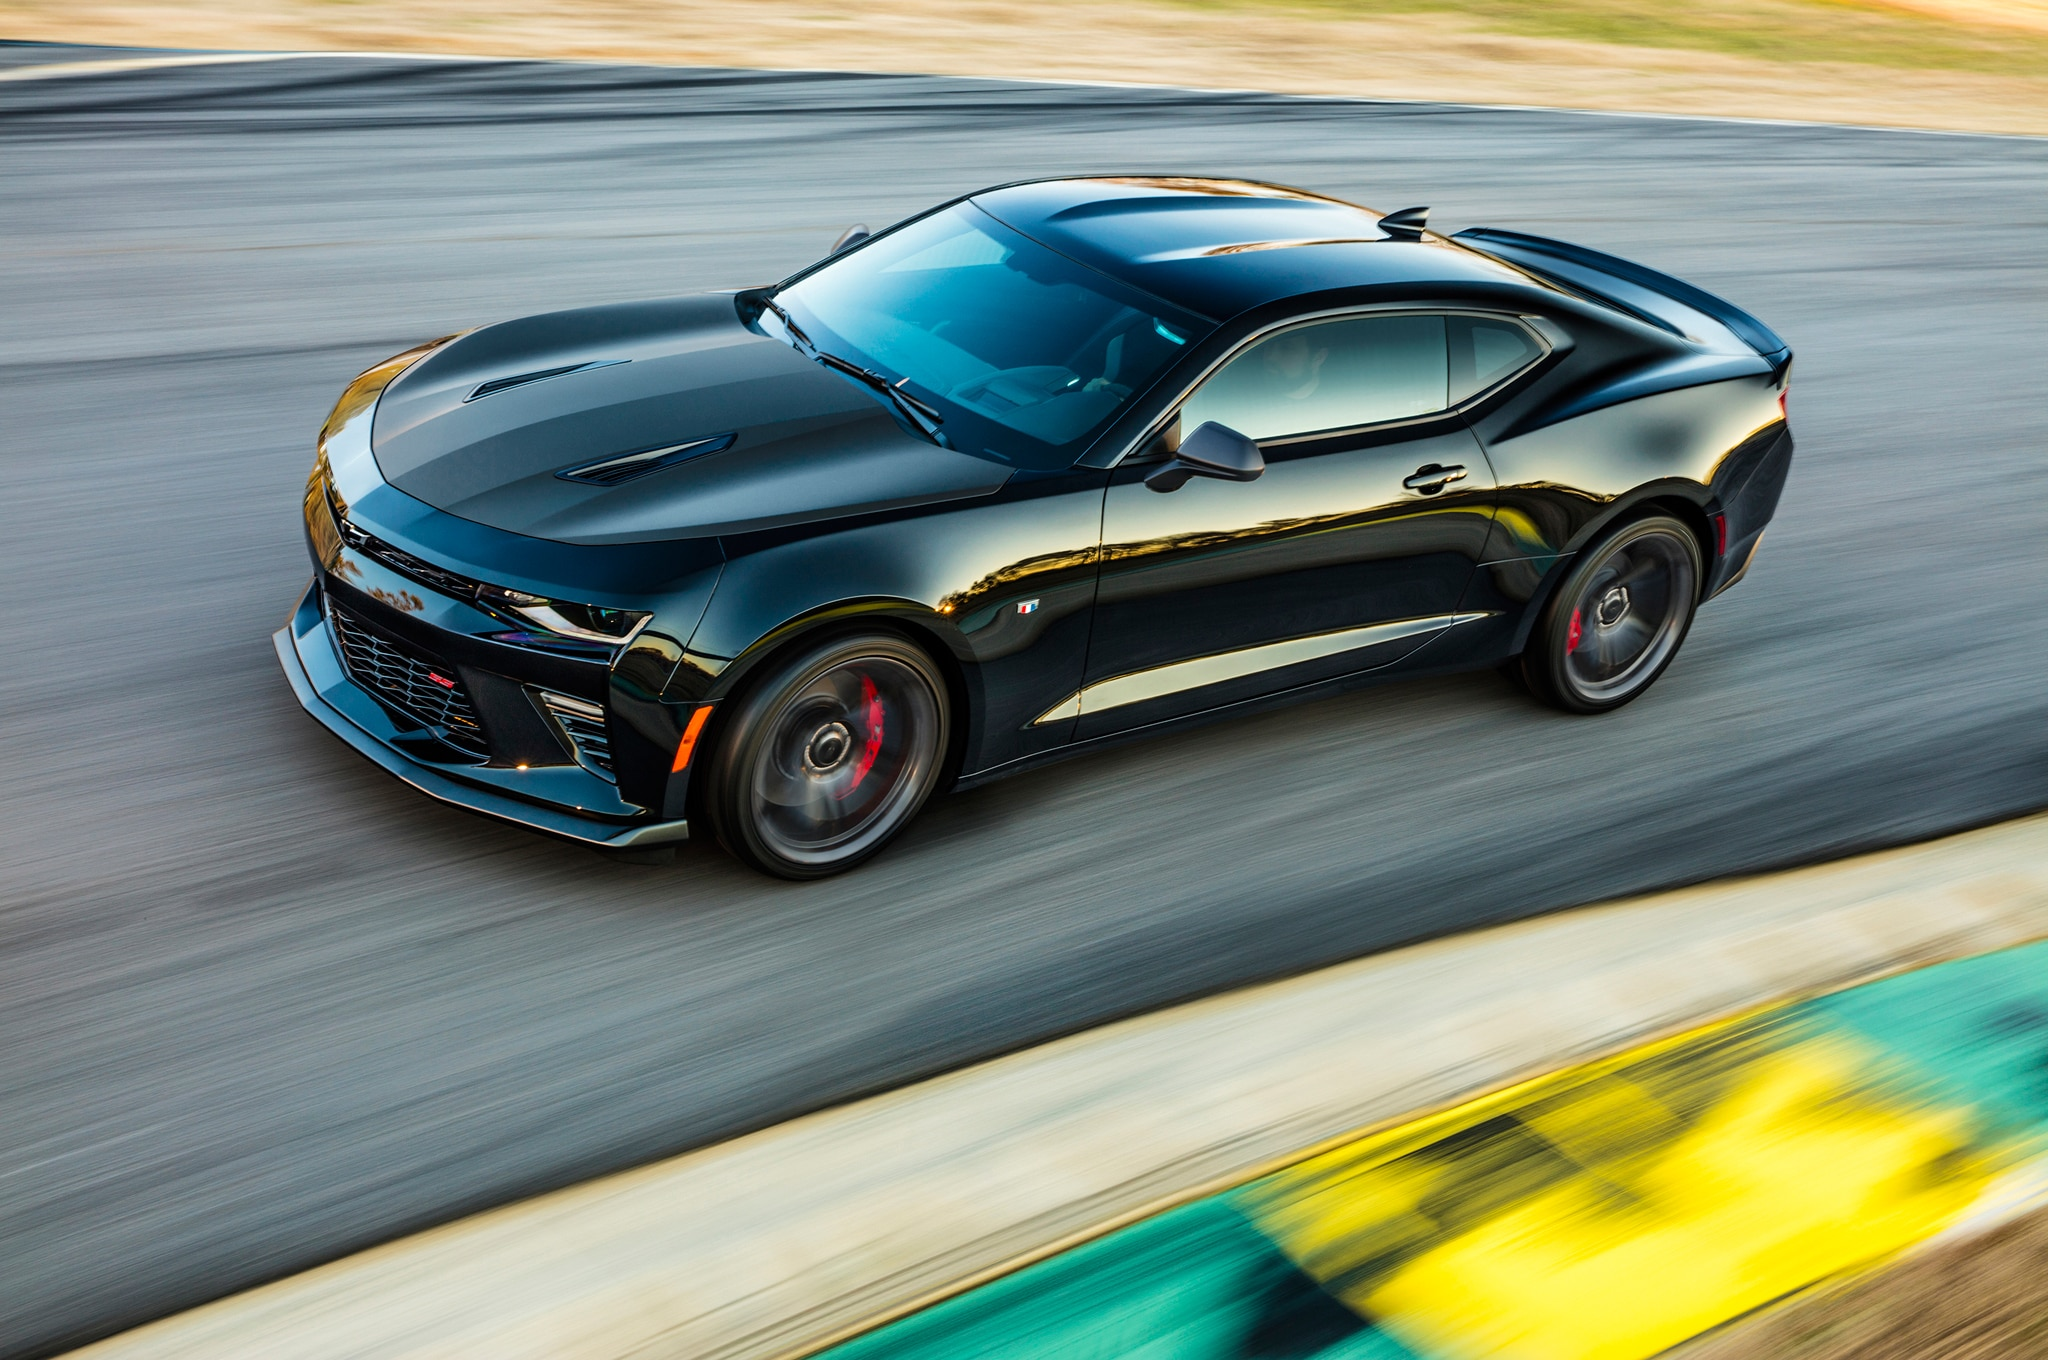 2017 Chevrolet Camaro 1LE front three quarter in motion